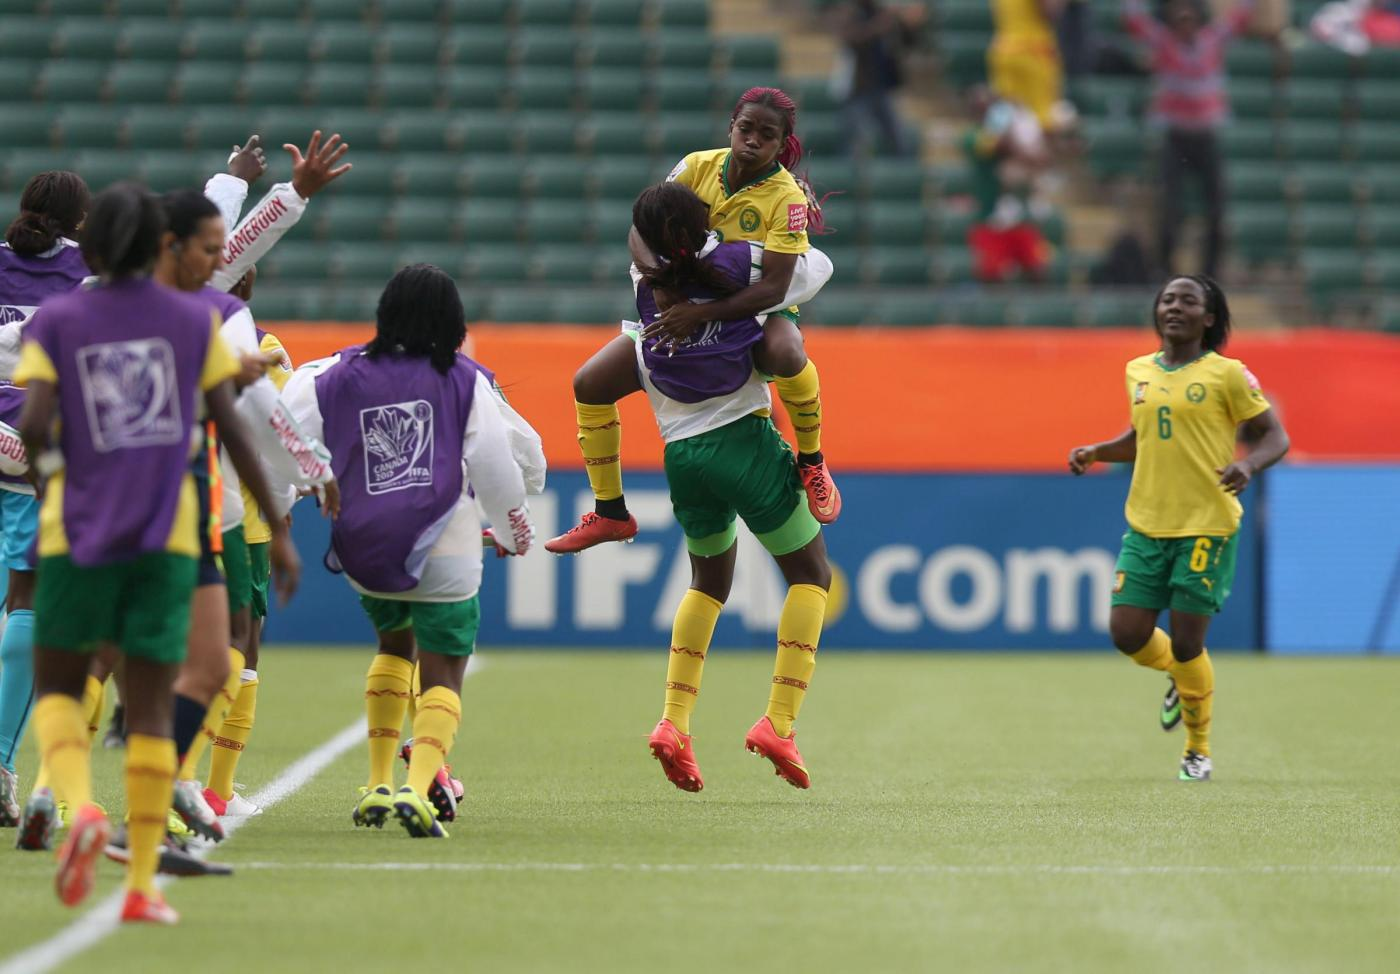 (150617) -- EDMONTON, June 17, 2015 (Xinhua) -- Madeleine Ngono Mani (above) of Cameroon celebrates for score during the group C match against Switzerland at the 2015 FIFA Women's World Cup in Edmonton, Canada, June 16, 2015. Cameroon won 2-1 and was qualified for the round of 16. (Xinhua/Qin Lang)